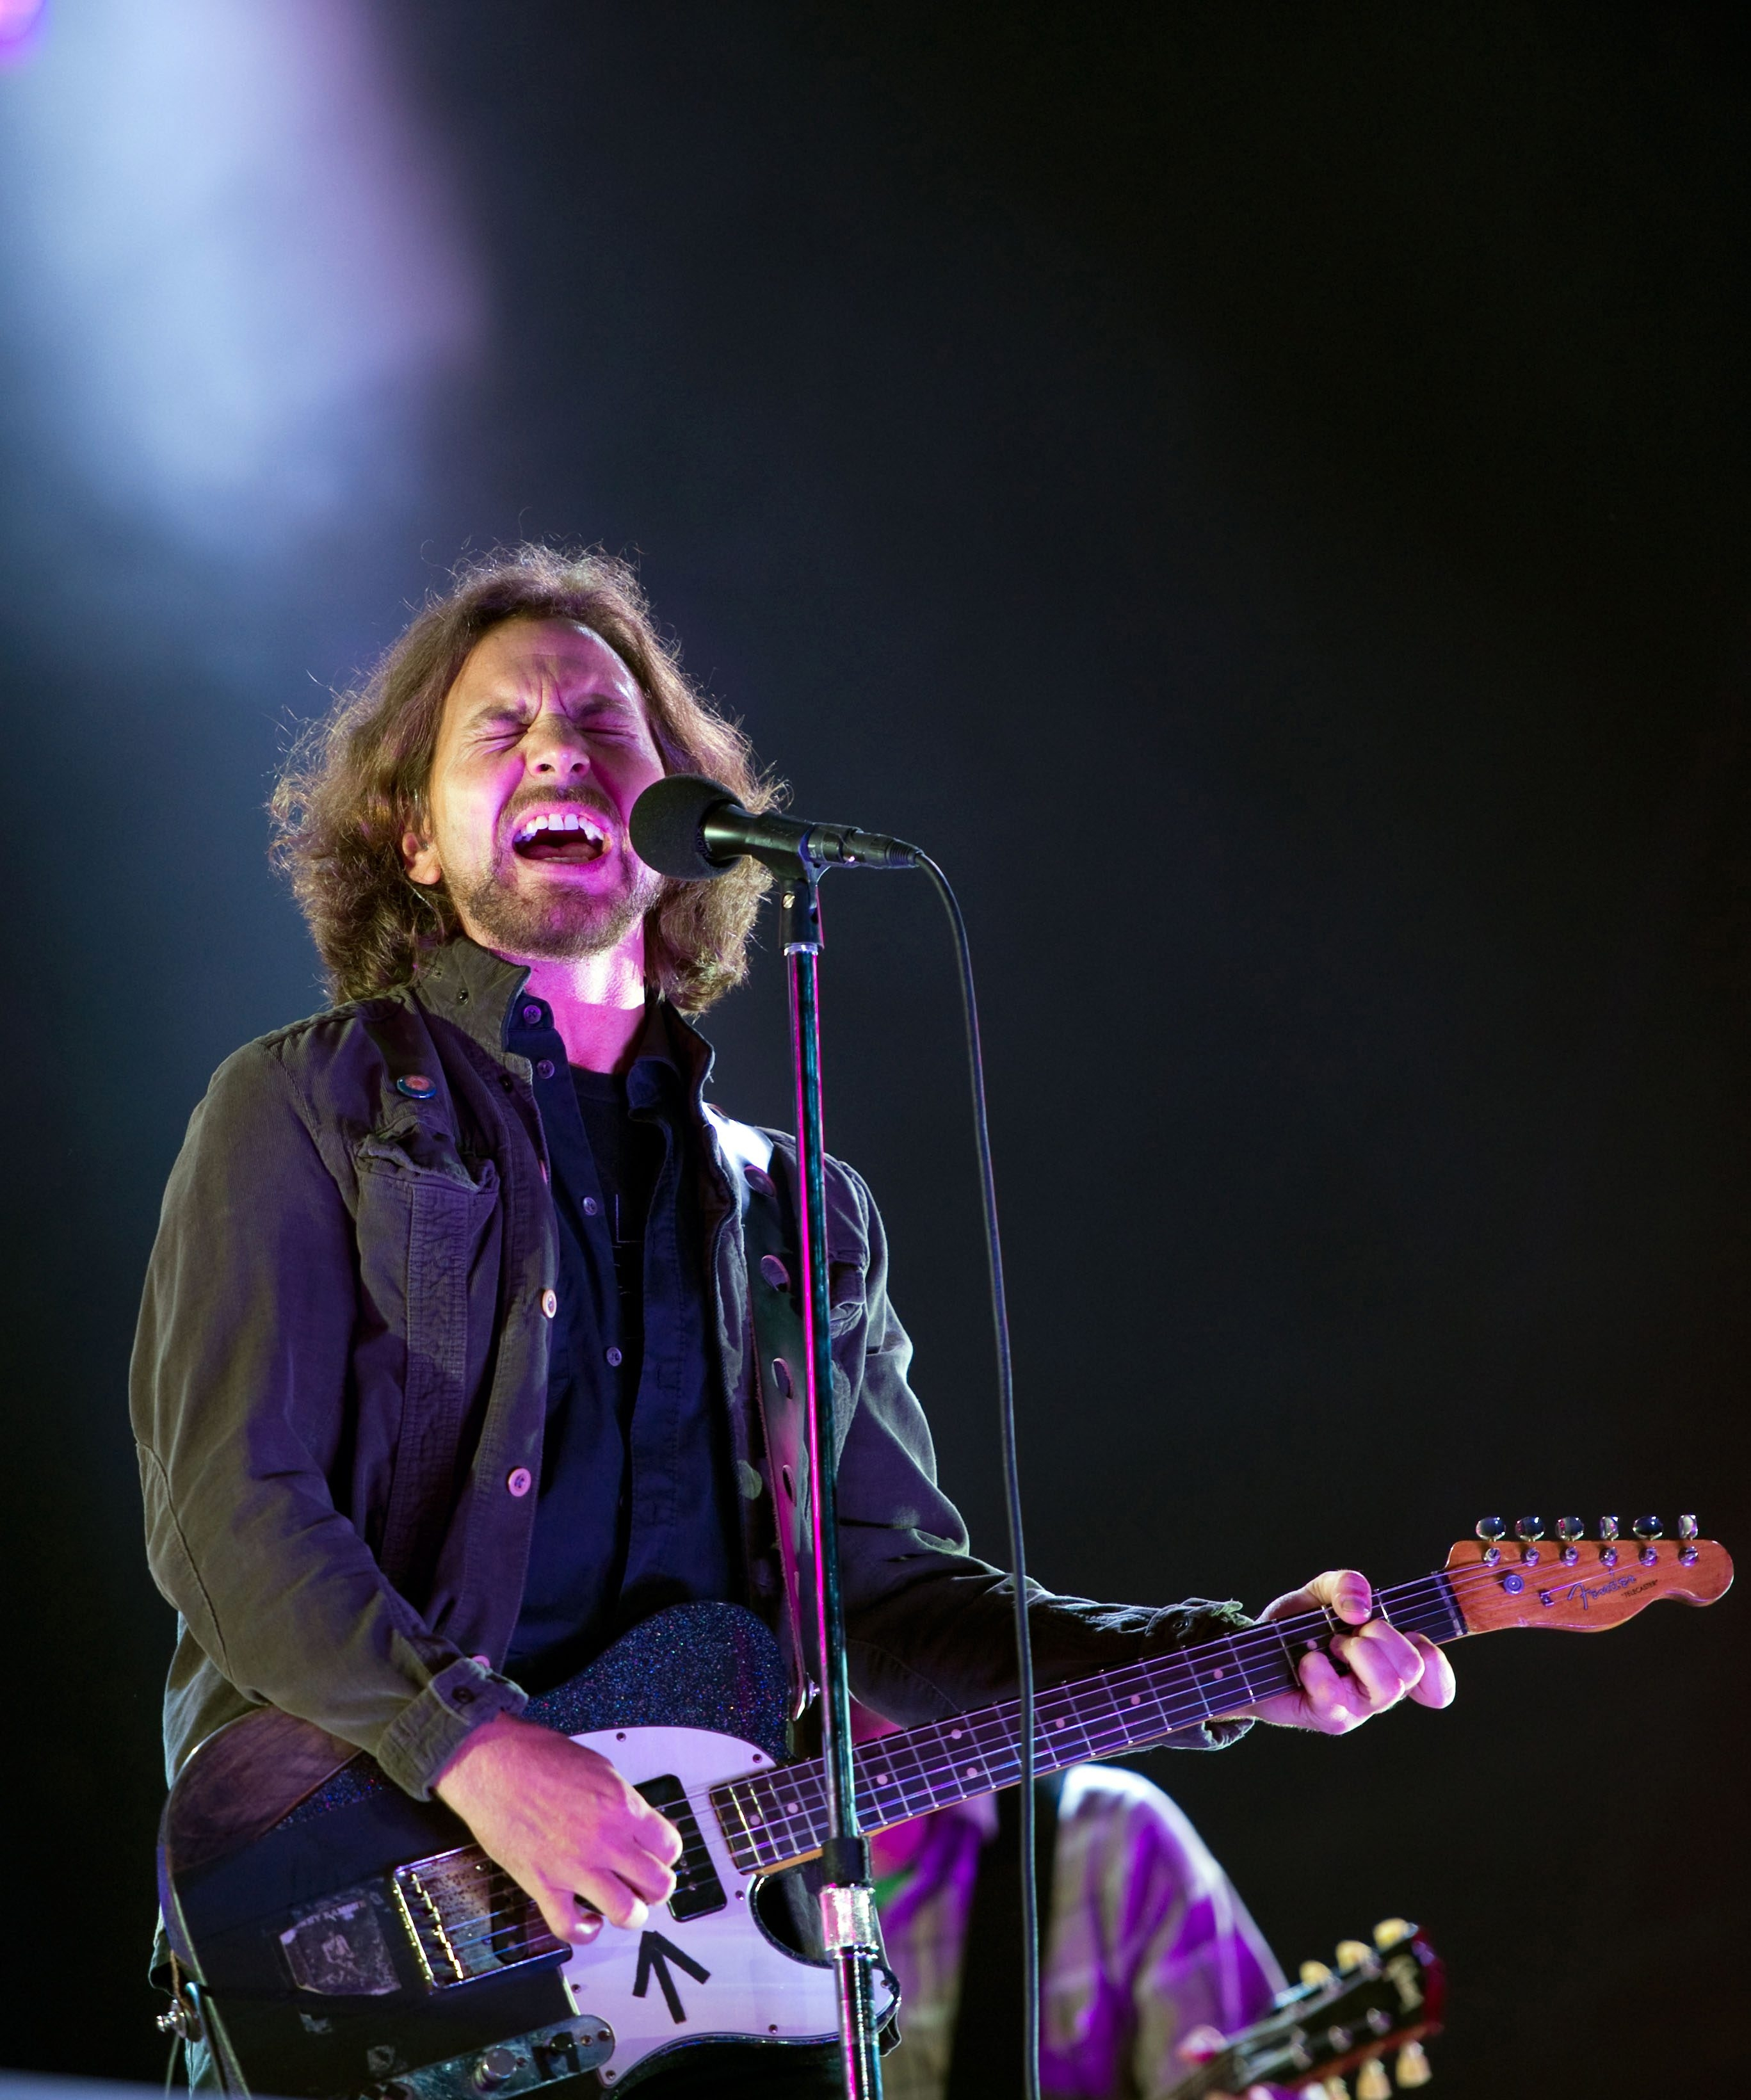 Eddie Reader of Pearl Jam performs on the main stage as the band headline day 3 of The Isle of Wight Festival at Seaclose Park on June 23, 2012 in Newport, Isle of Wight.